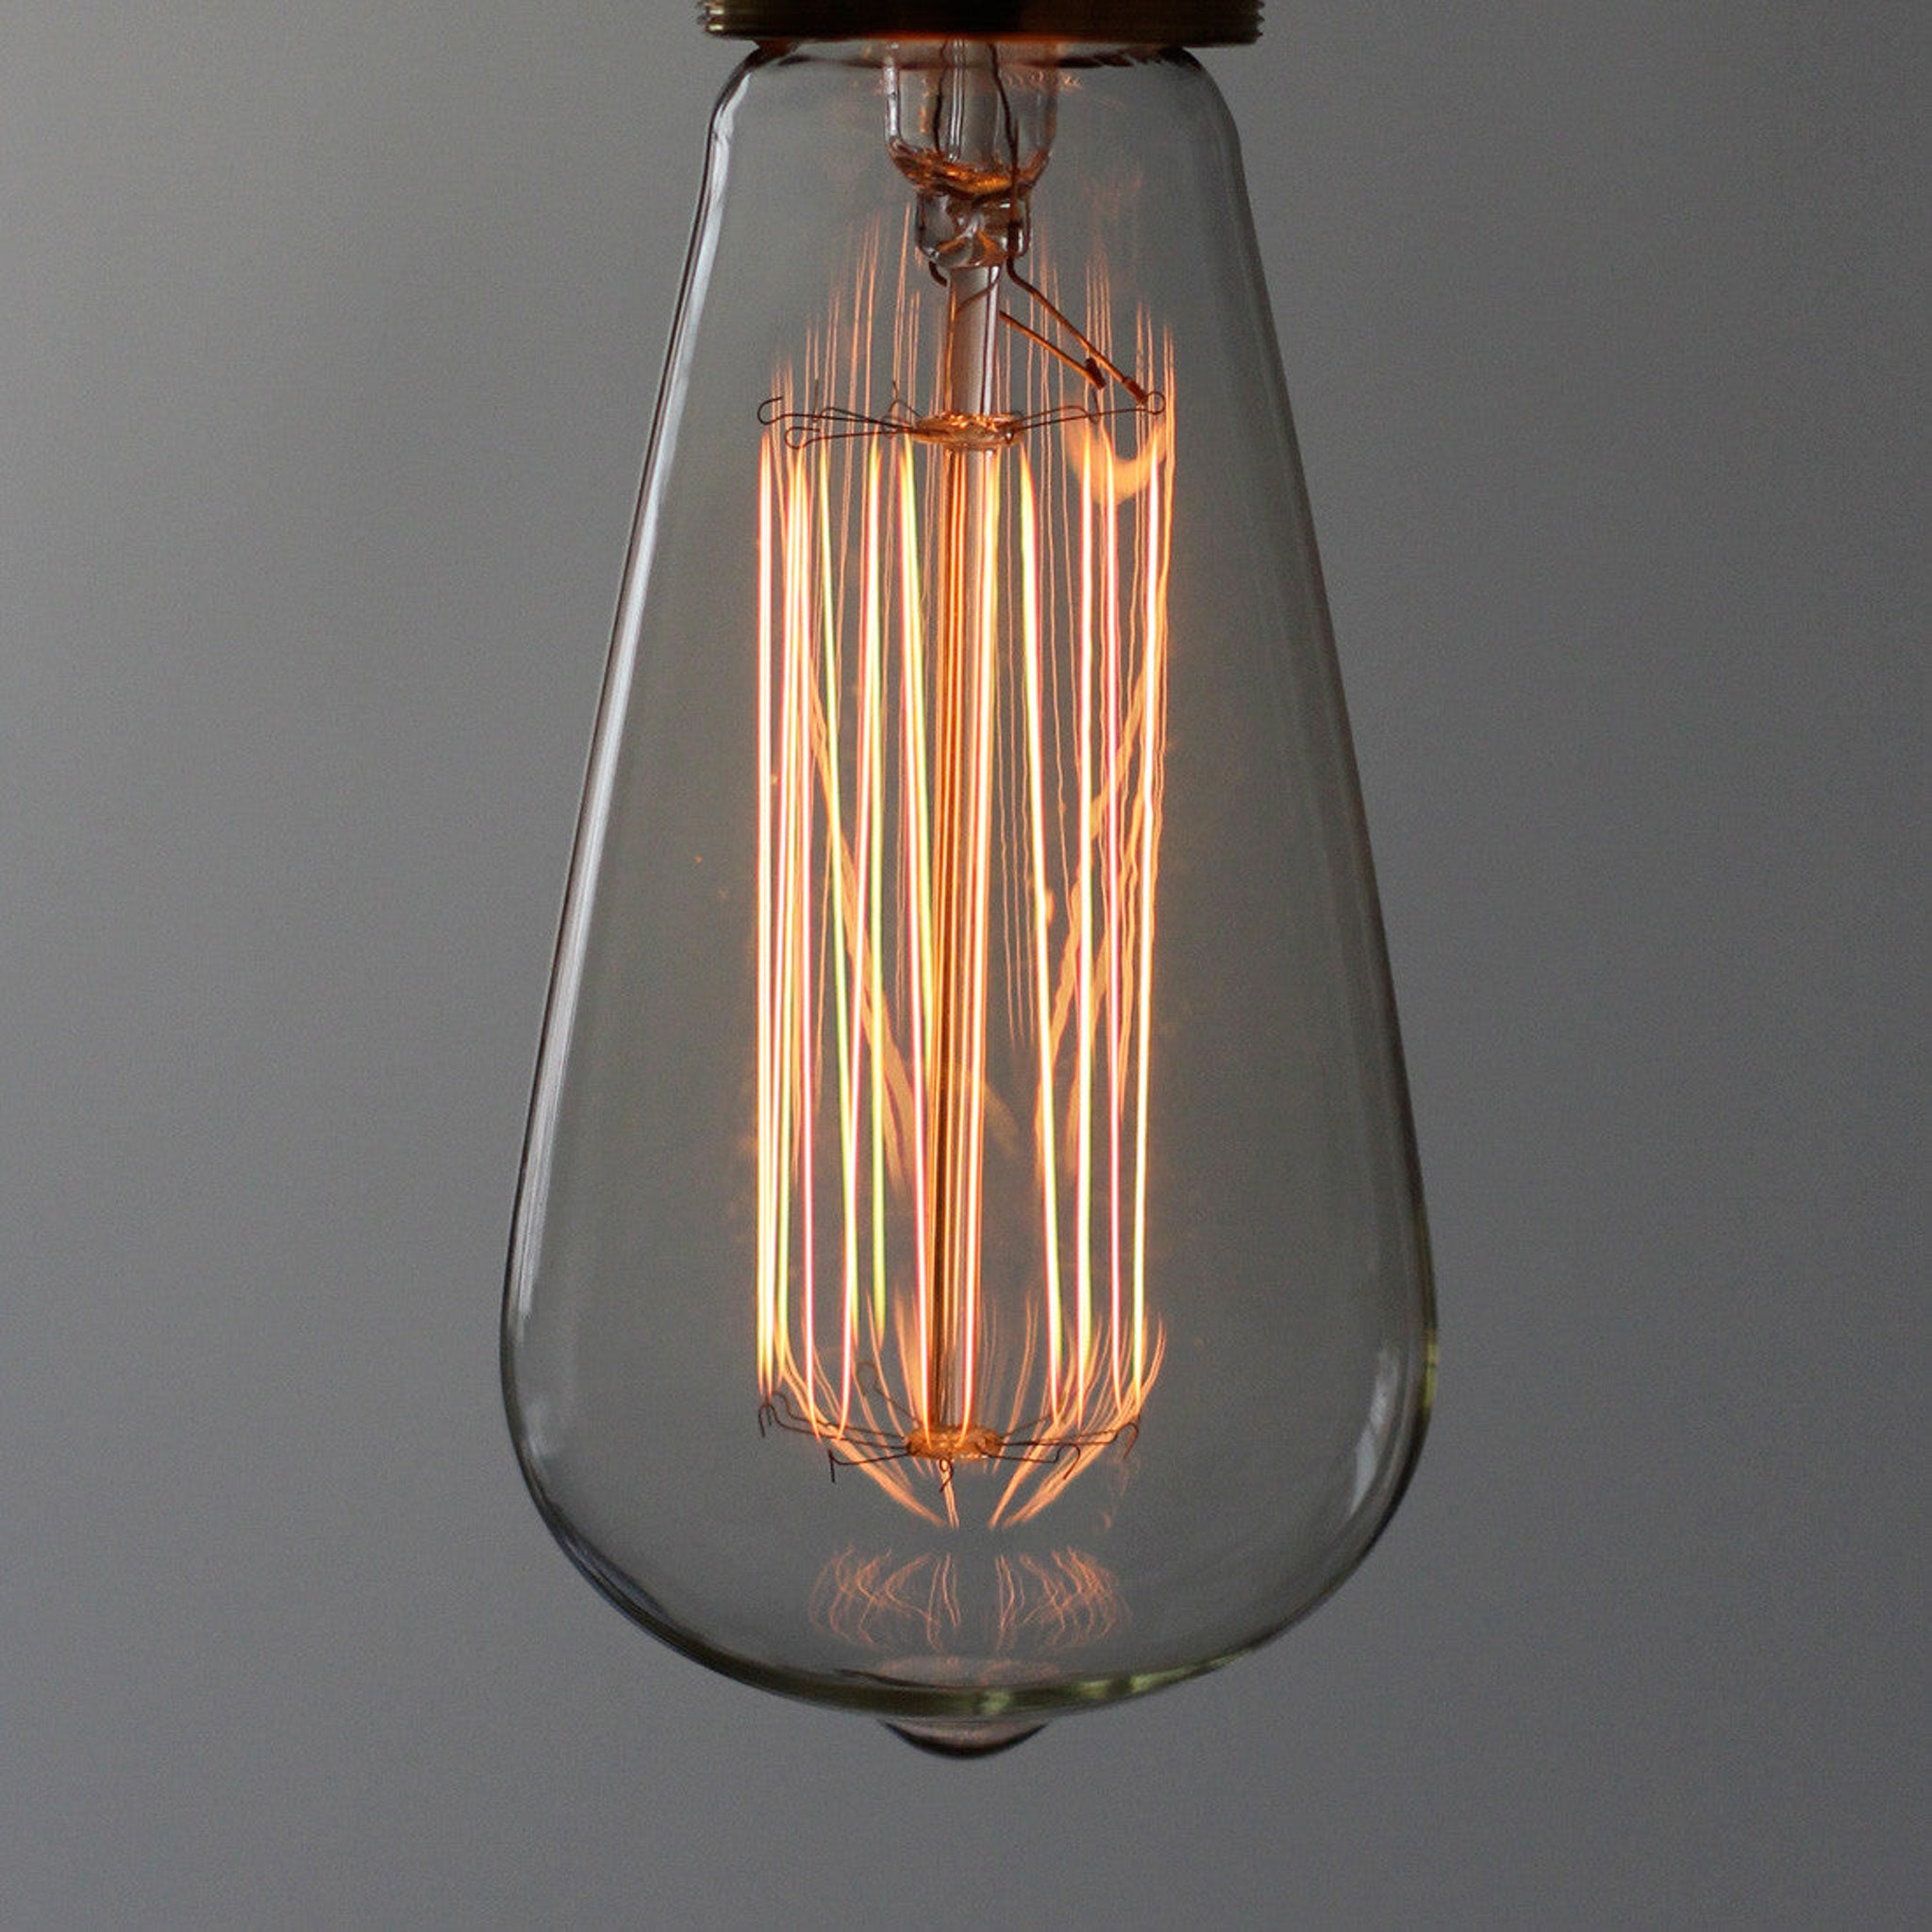 Squirrel Cage Carbon Filament Lamp by Mimime